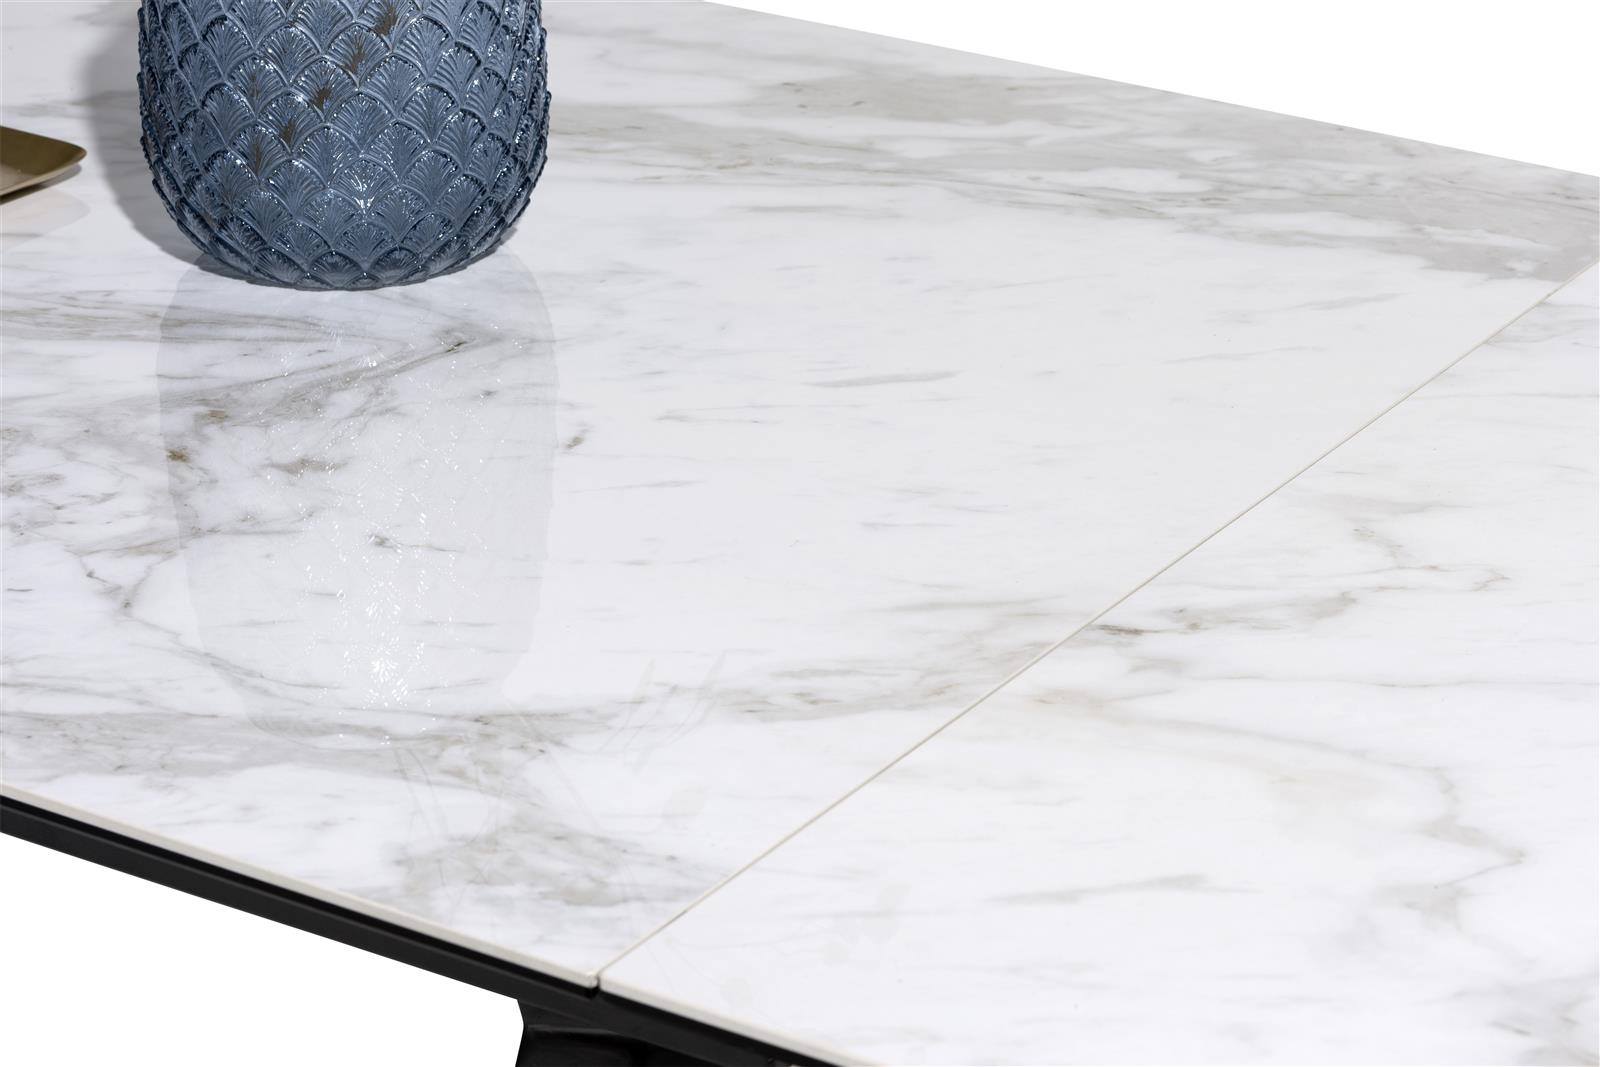 [Habufa Glasgow]-[Xooon Glasgow]-[Belgica Glasgow]-[Michael o Connor]-[Ceramic table]-[Marble table]-Against The Grain Furniture